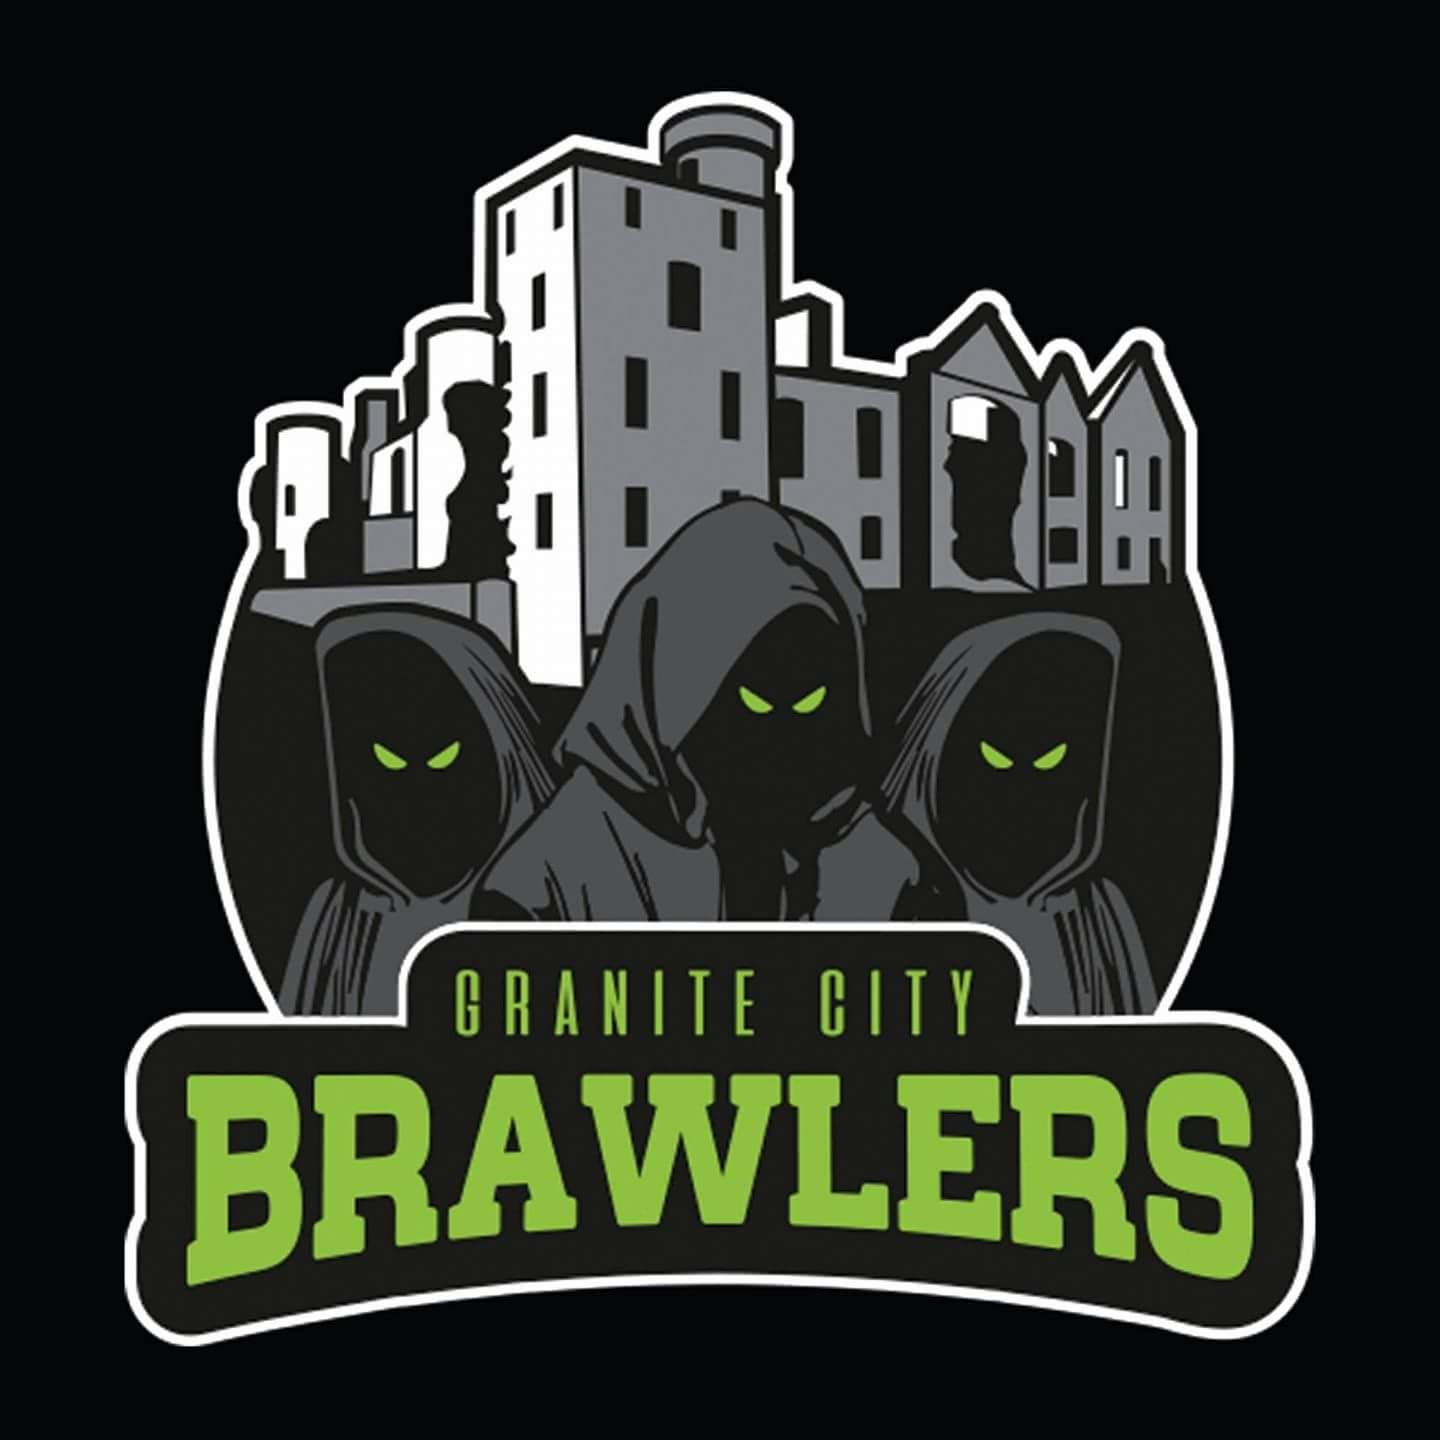 Granite City Brawlers